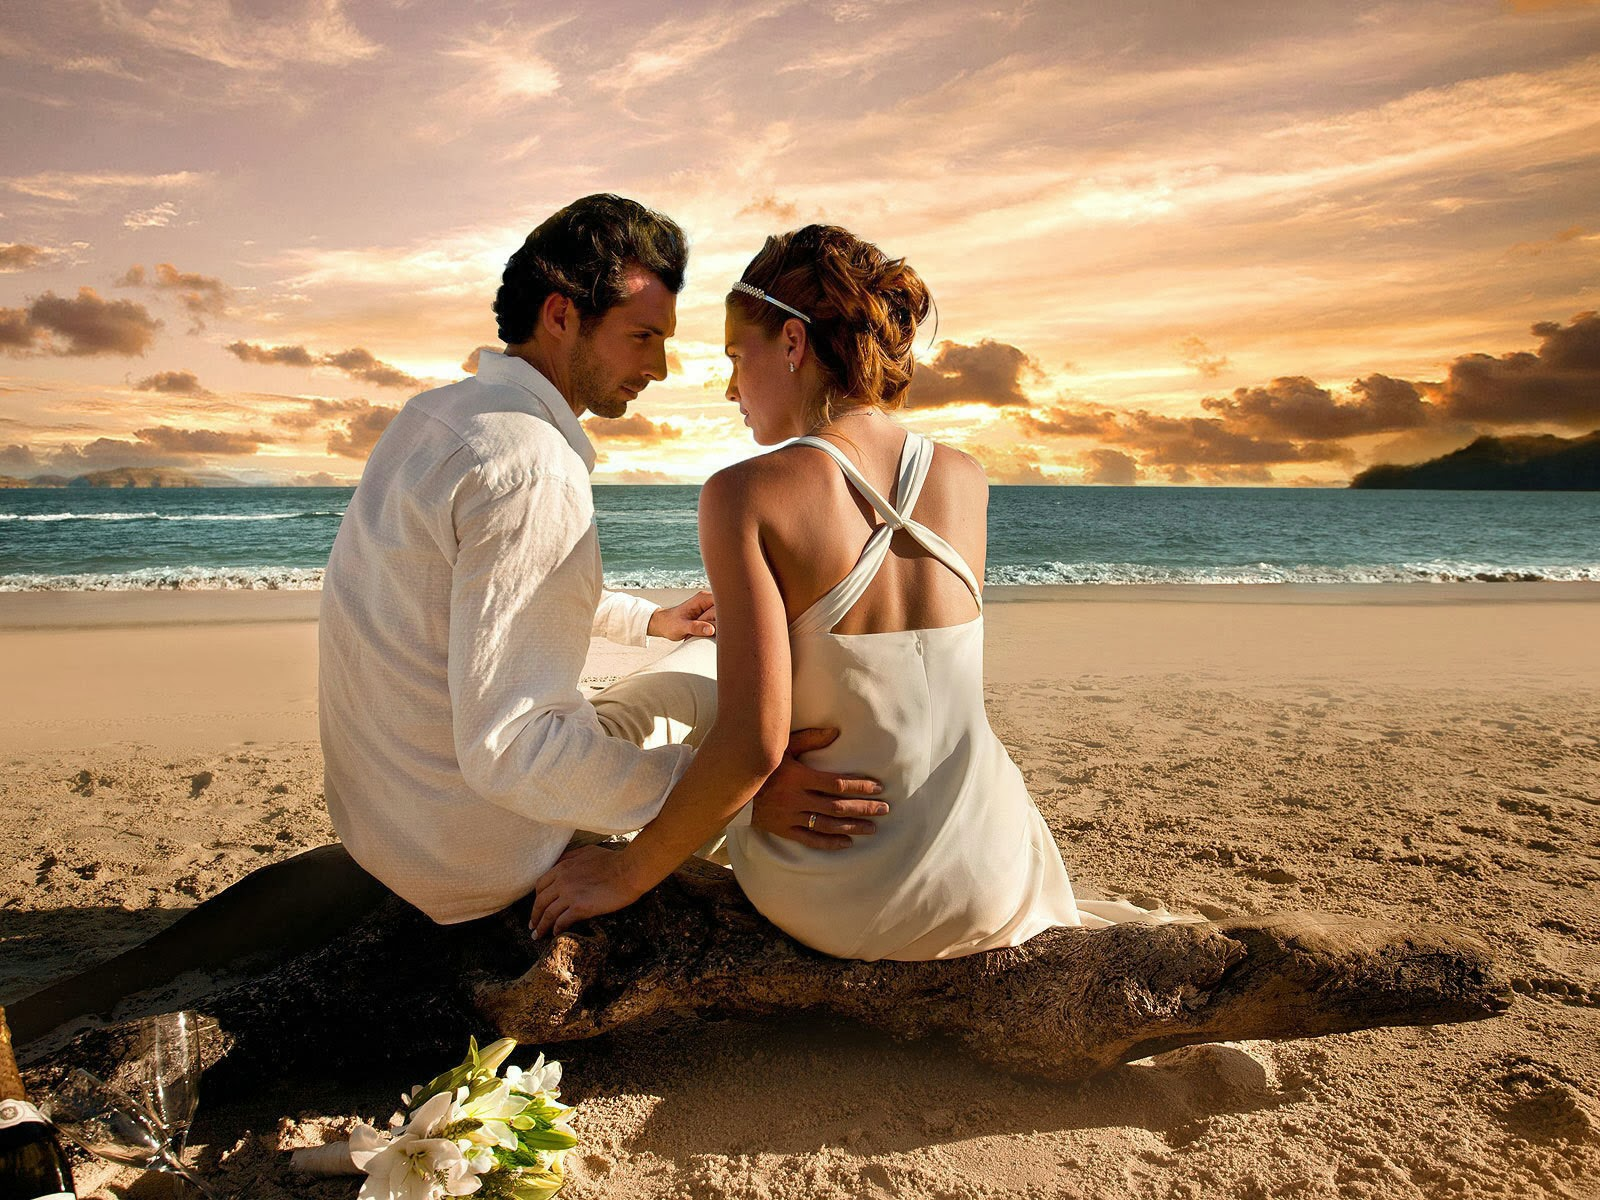 romantic lovers pics